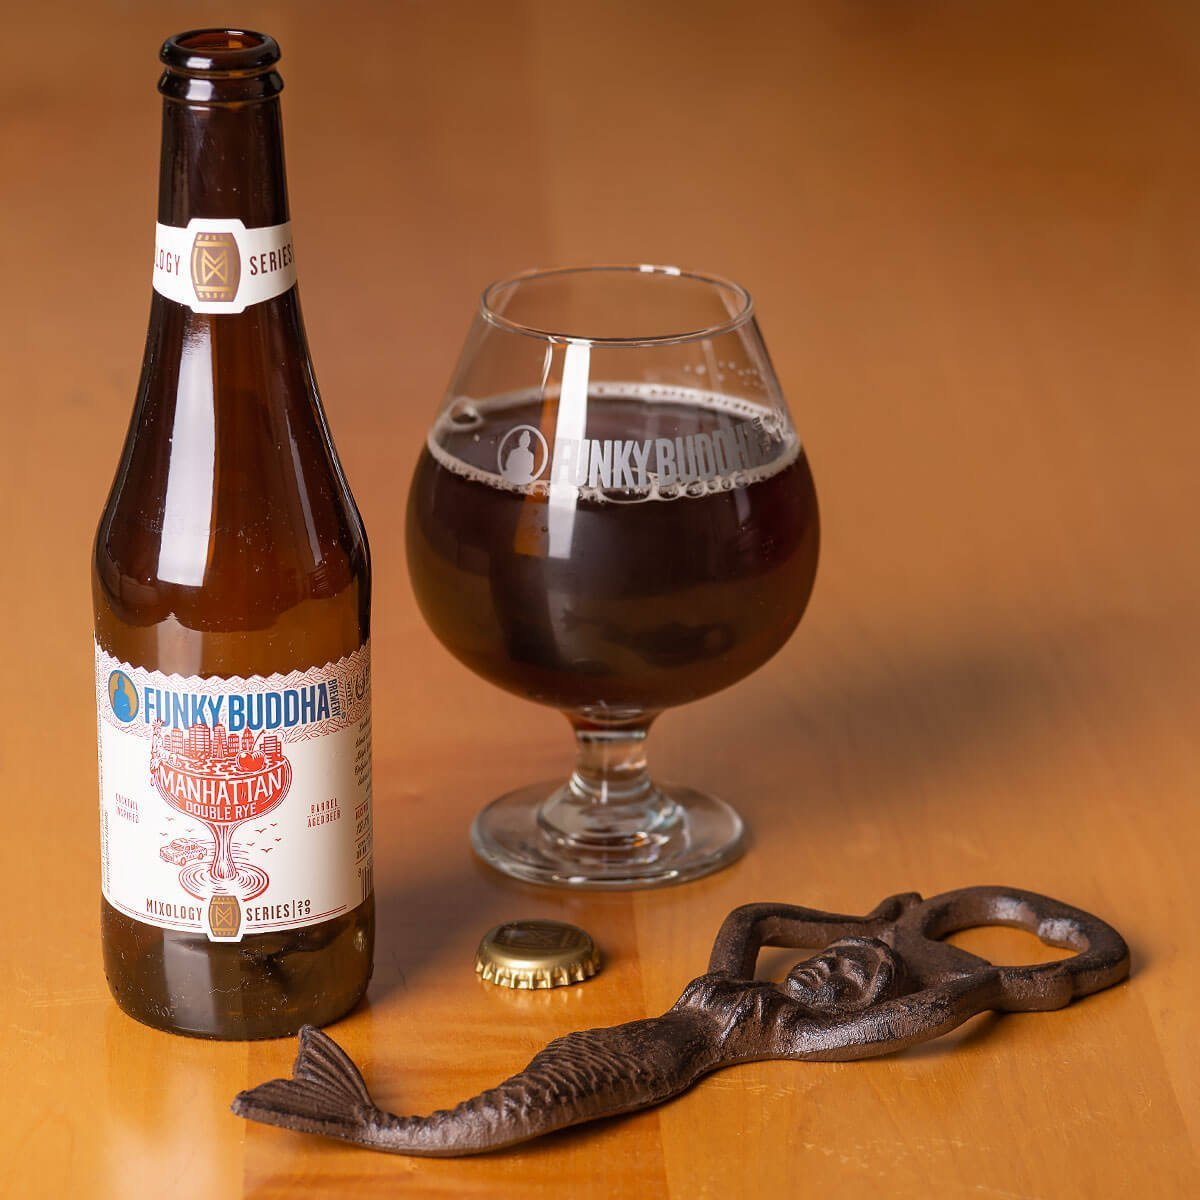 The Manhattan Double Rye Ale is a Rye Beer by Funky Buddha Brewery that's complex, sticky sweet, and as boozy as a cocktail. Here's why you should give it a try.